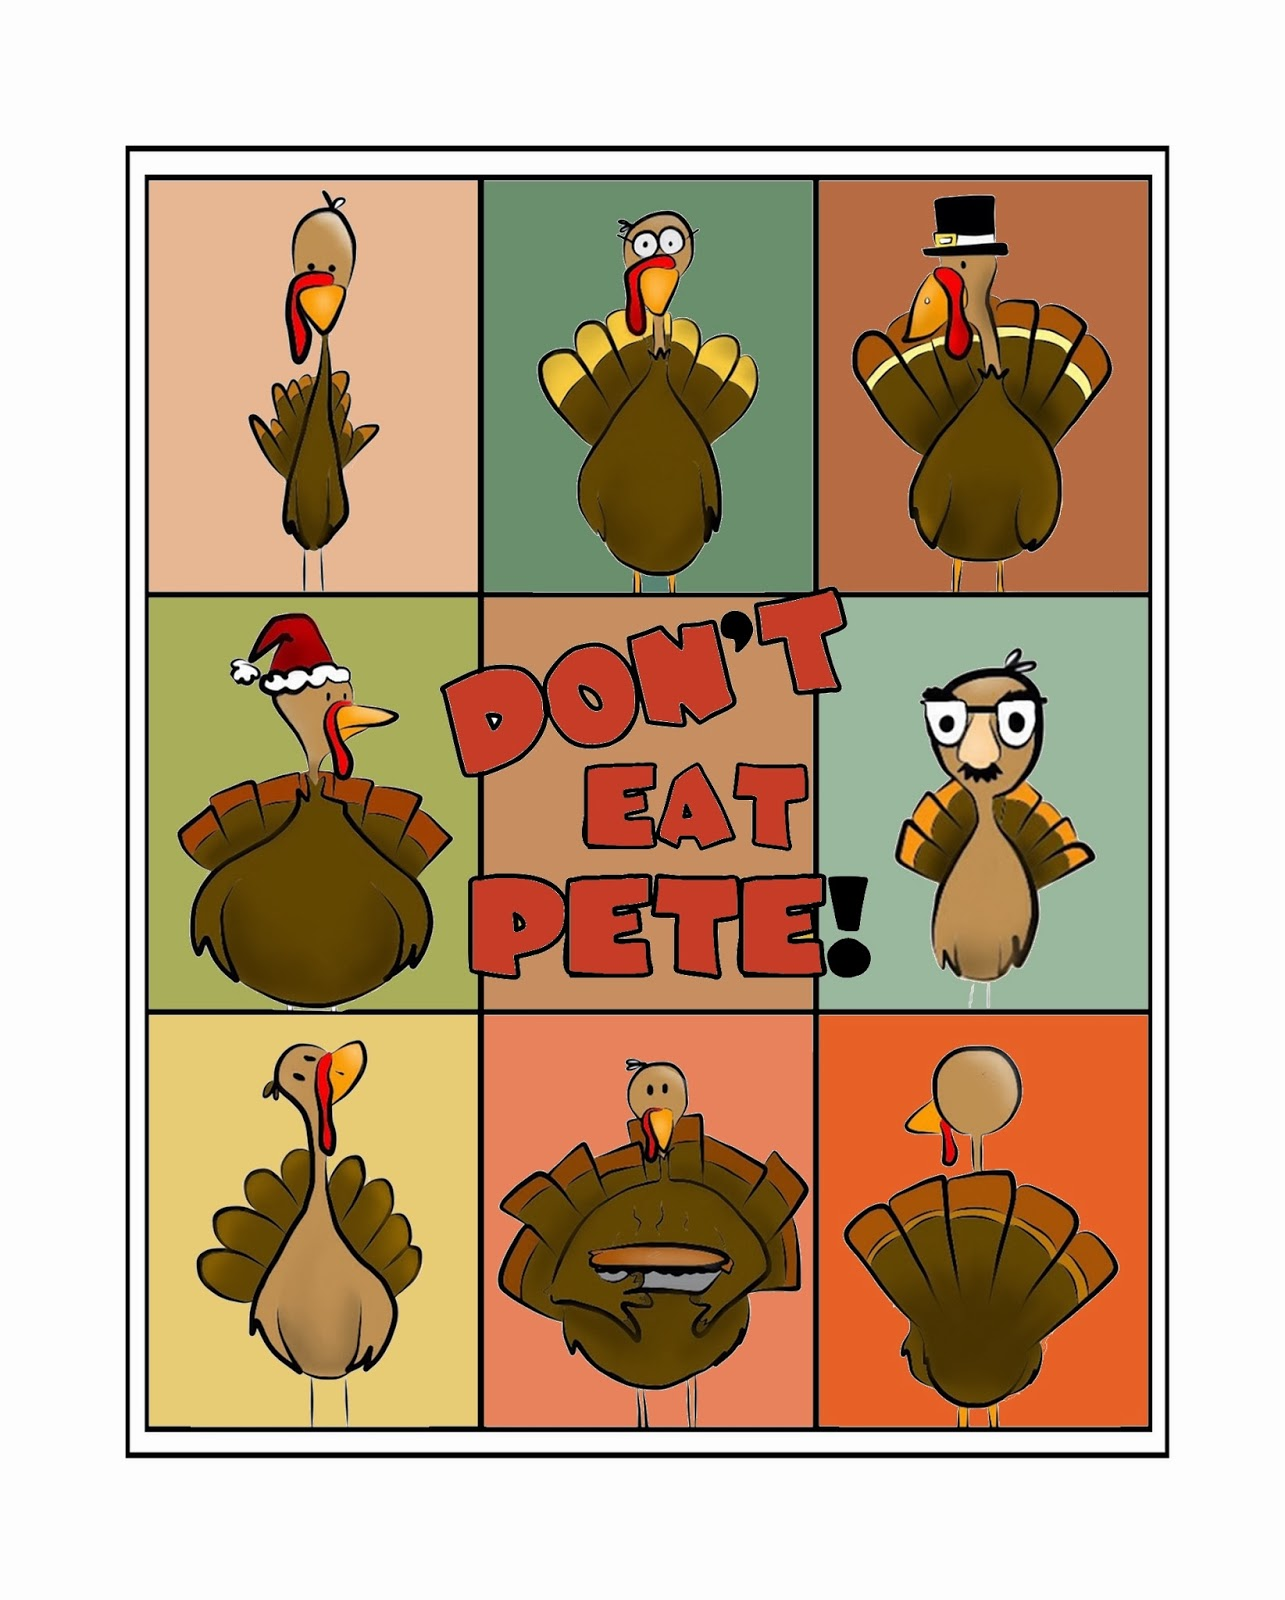 image relating to Don T Eat Pete Printable titled Dont Try to eat Pete!